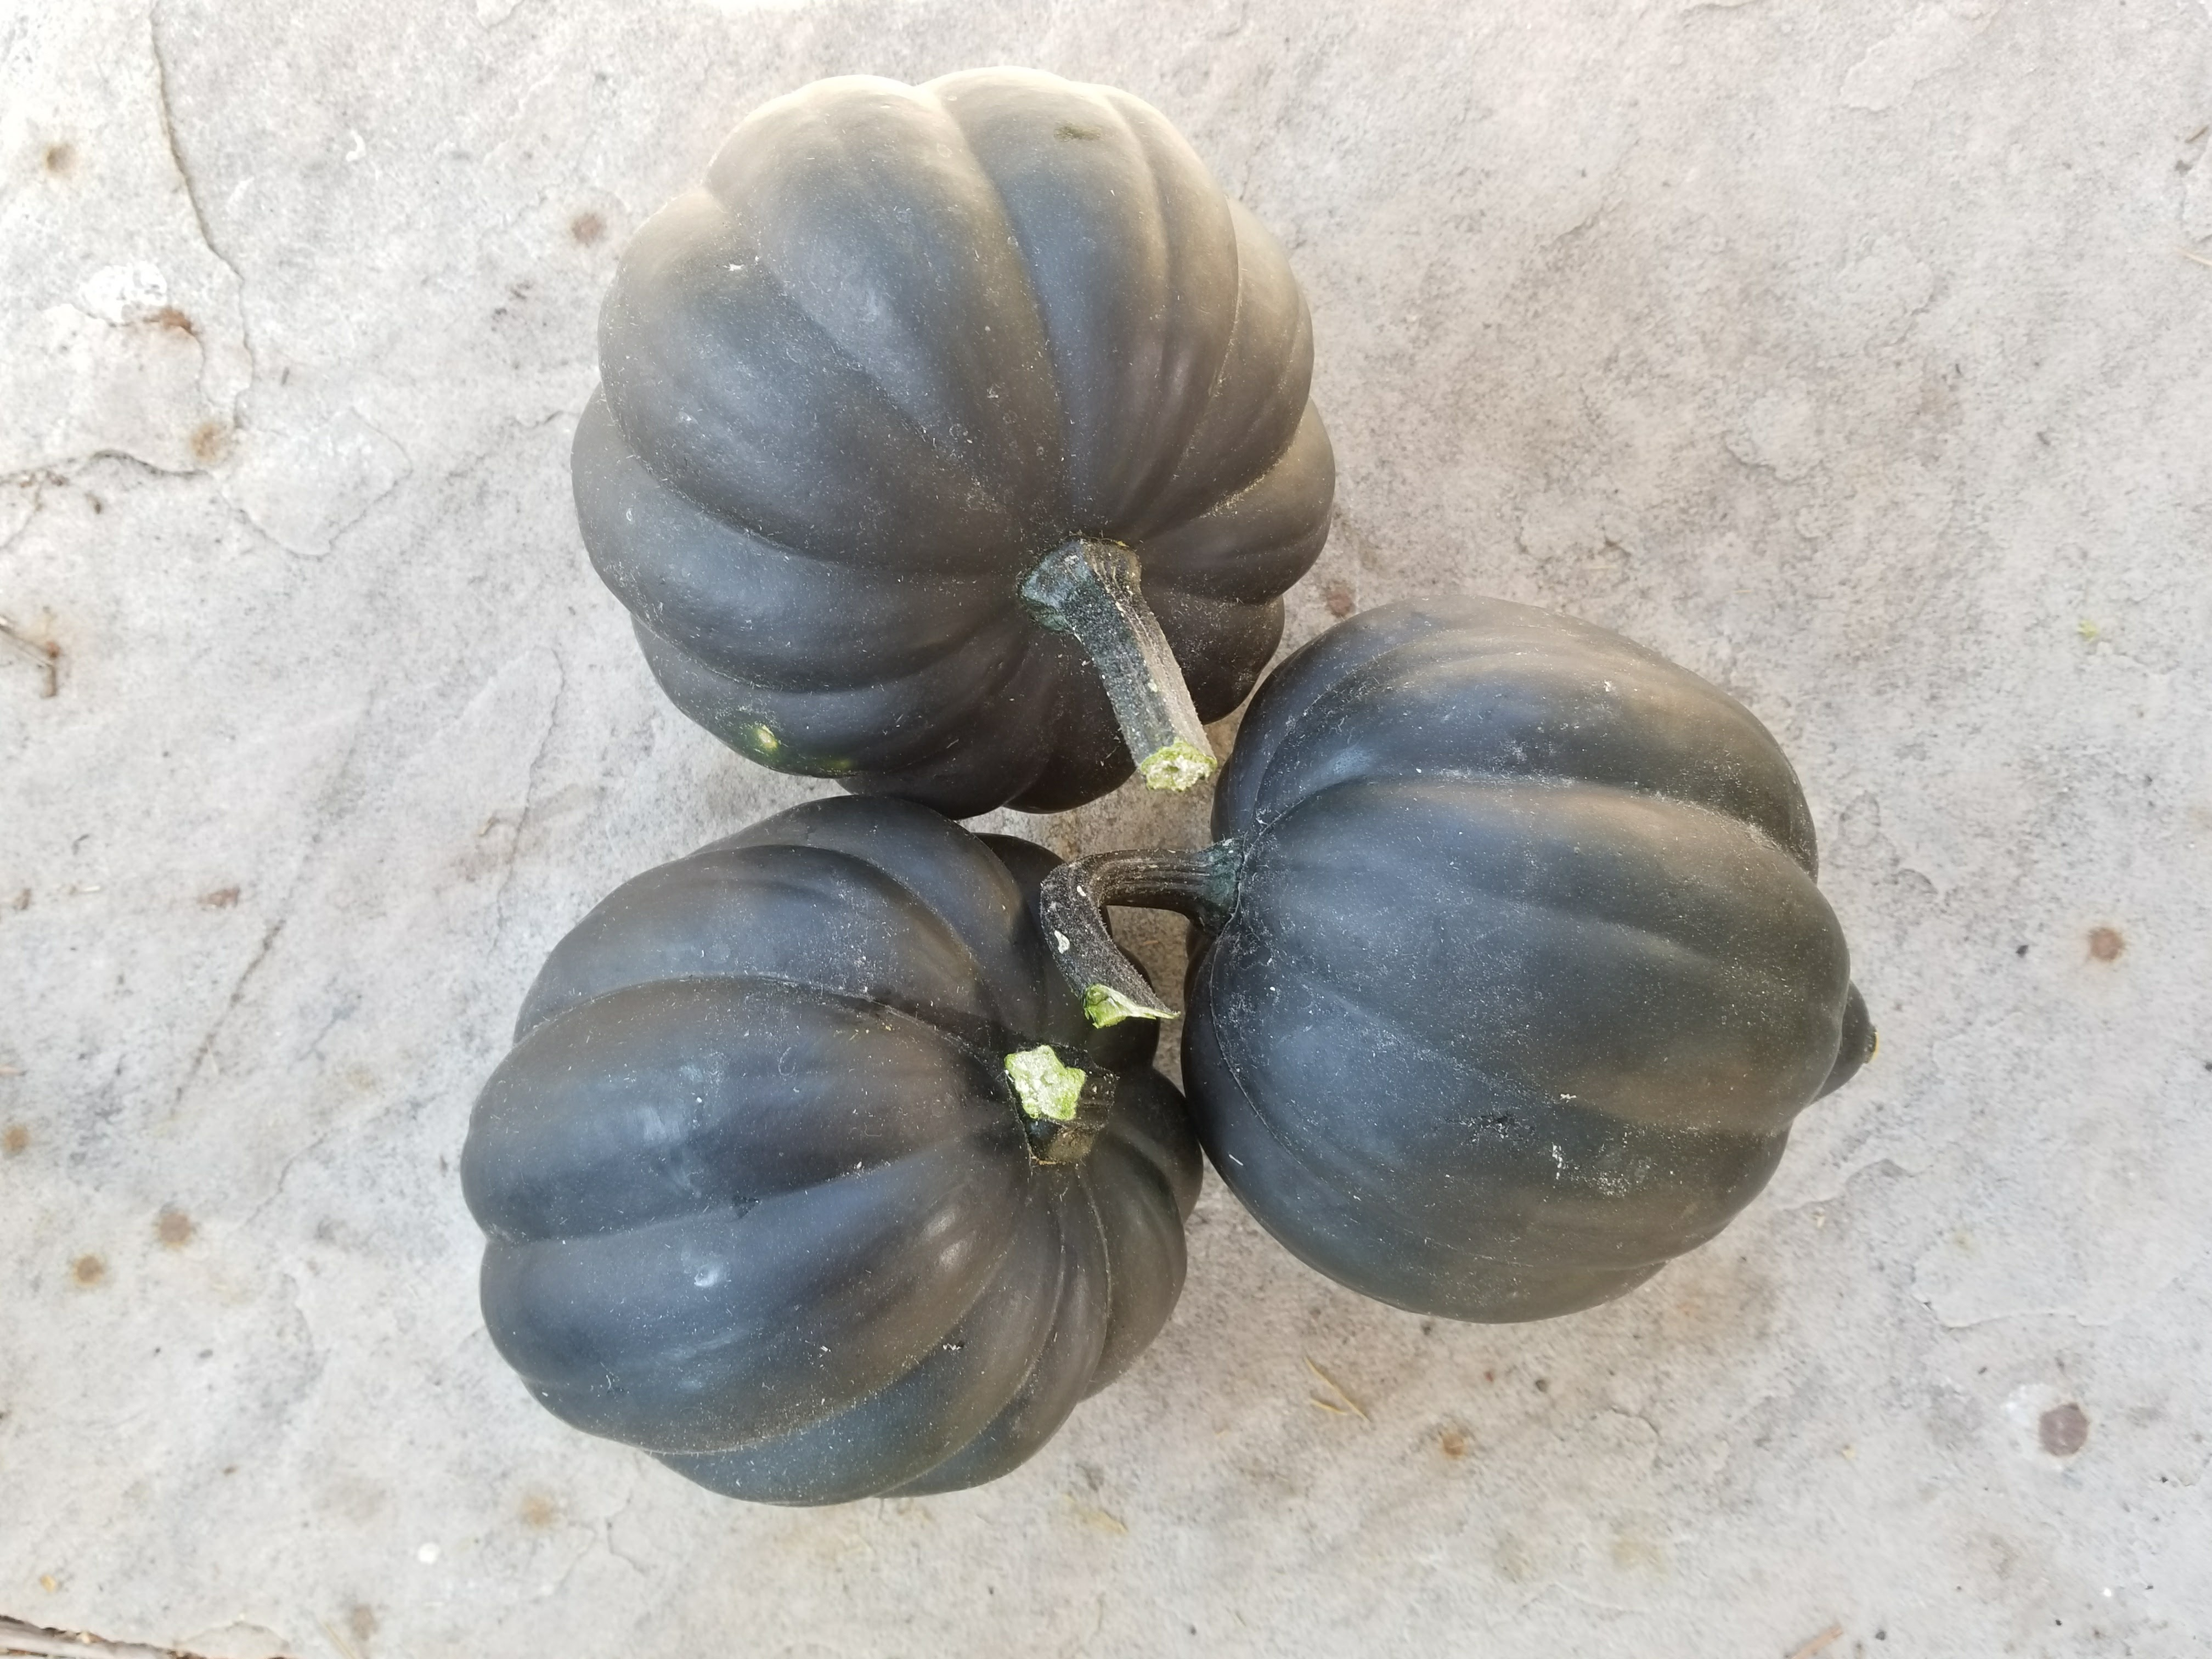 Squash (Winter): Sow and Grow Guide